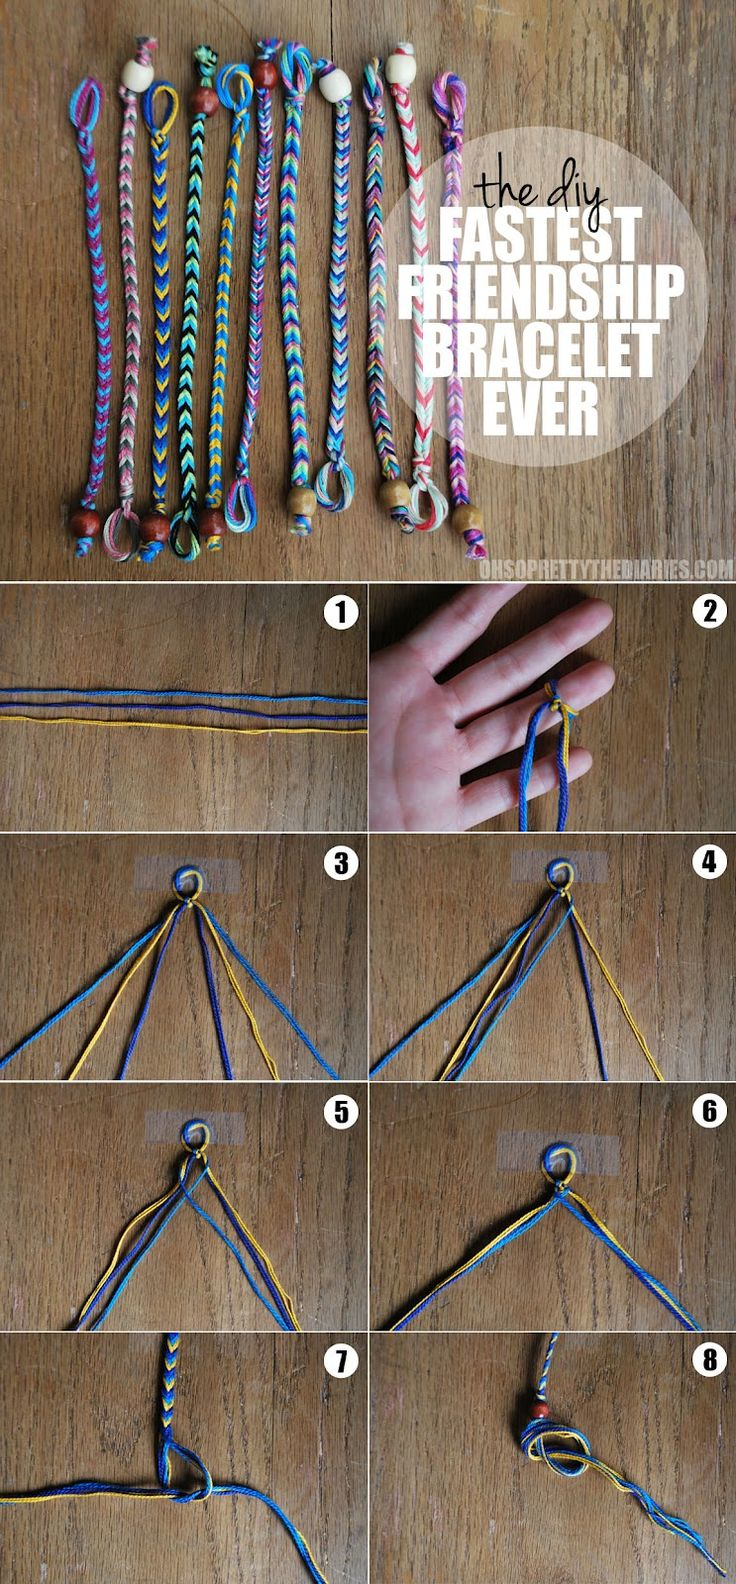 Make fast friendship bracelets.